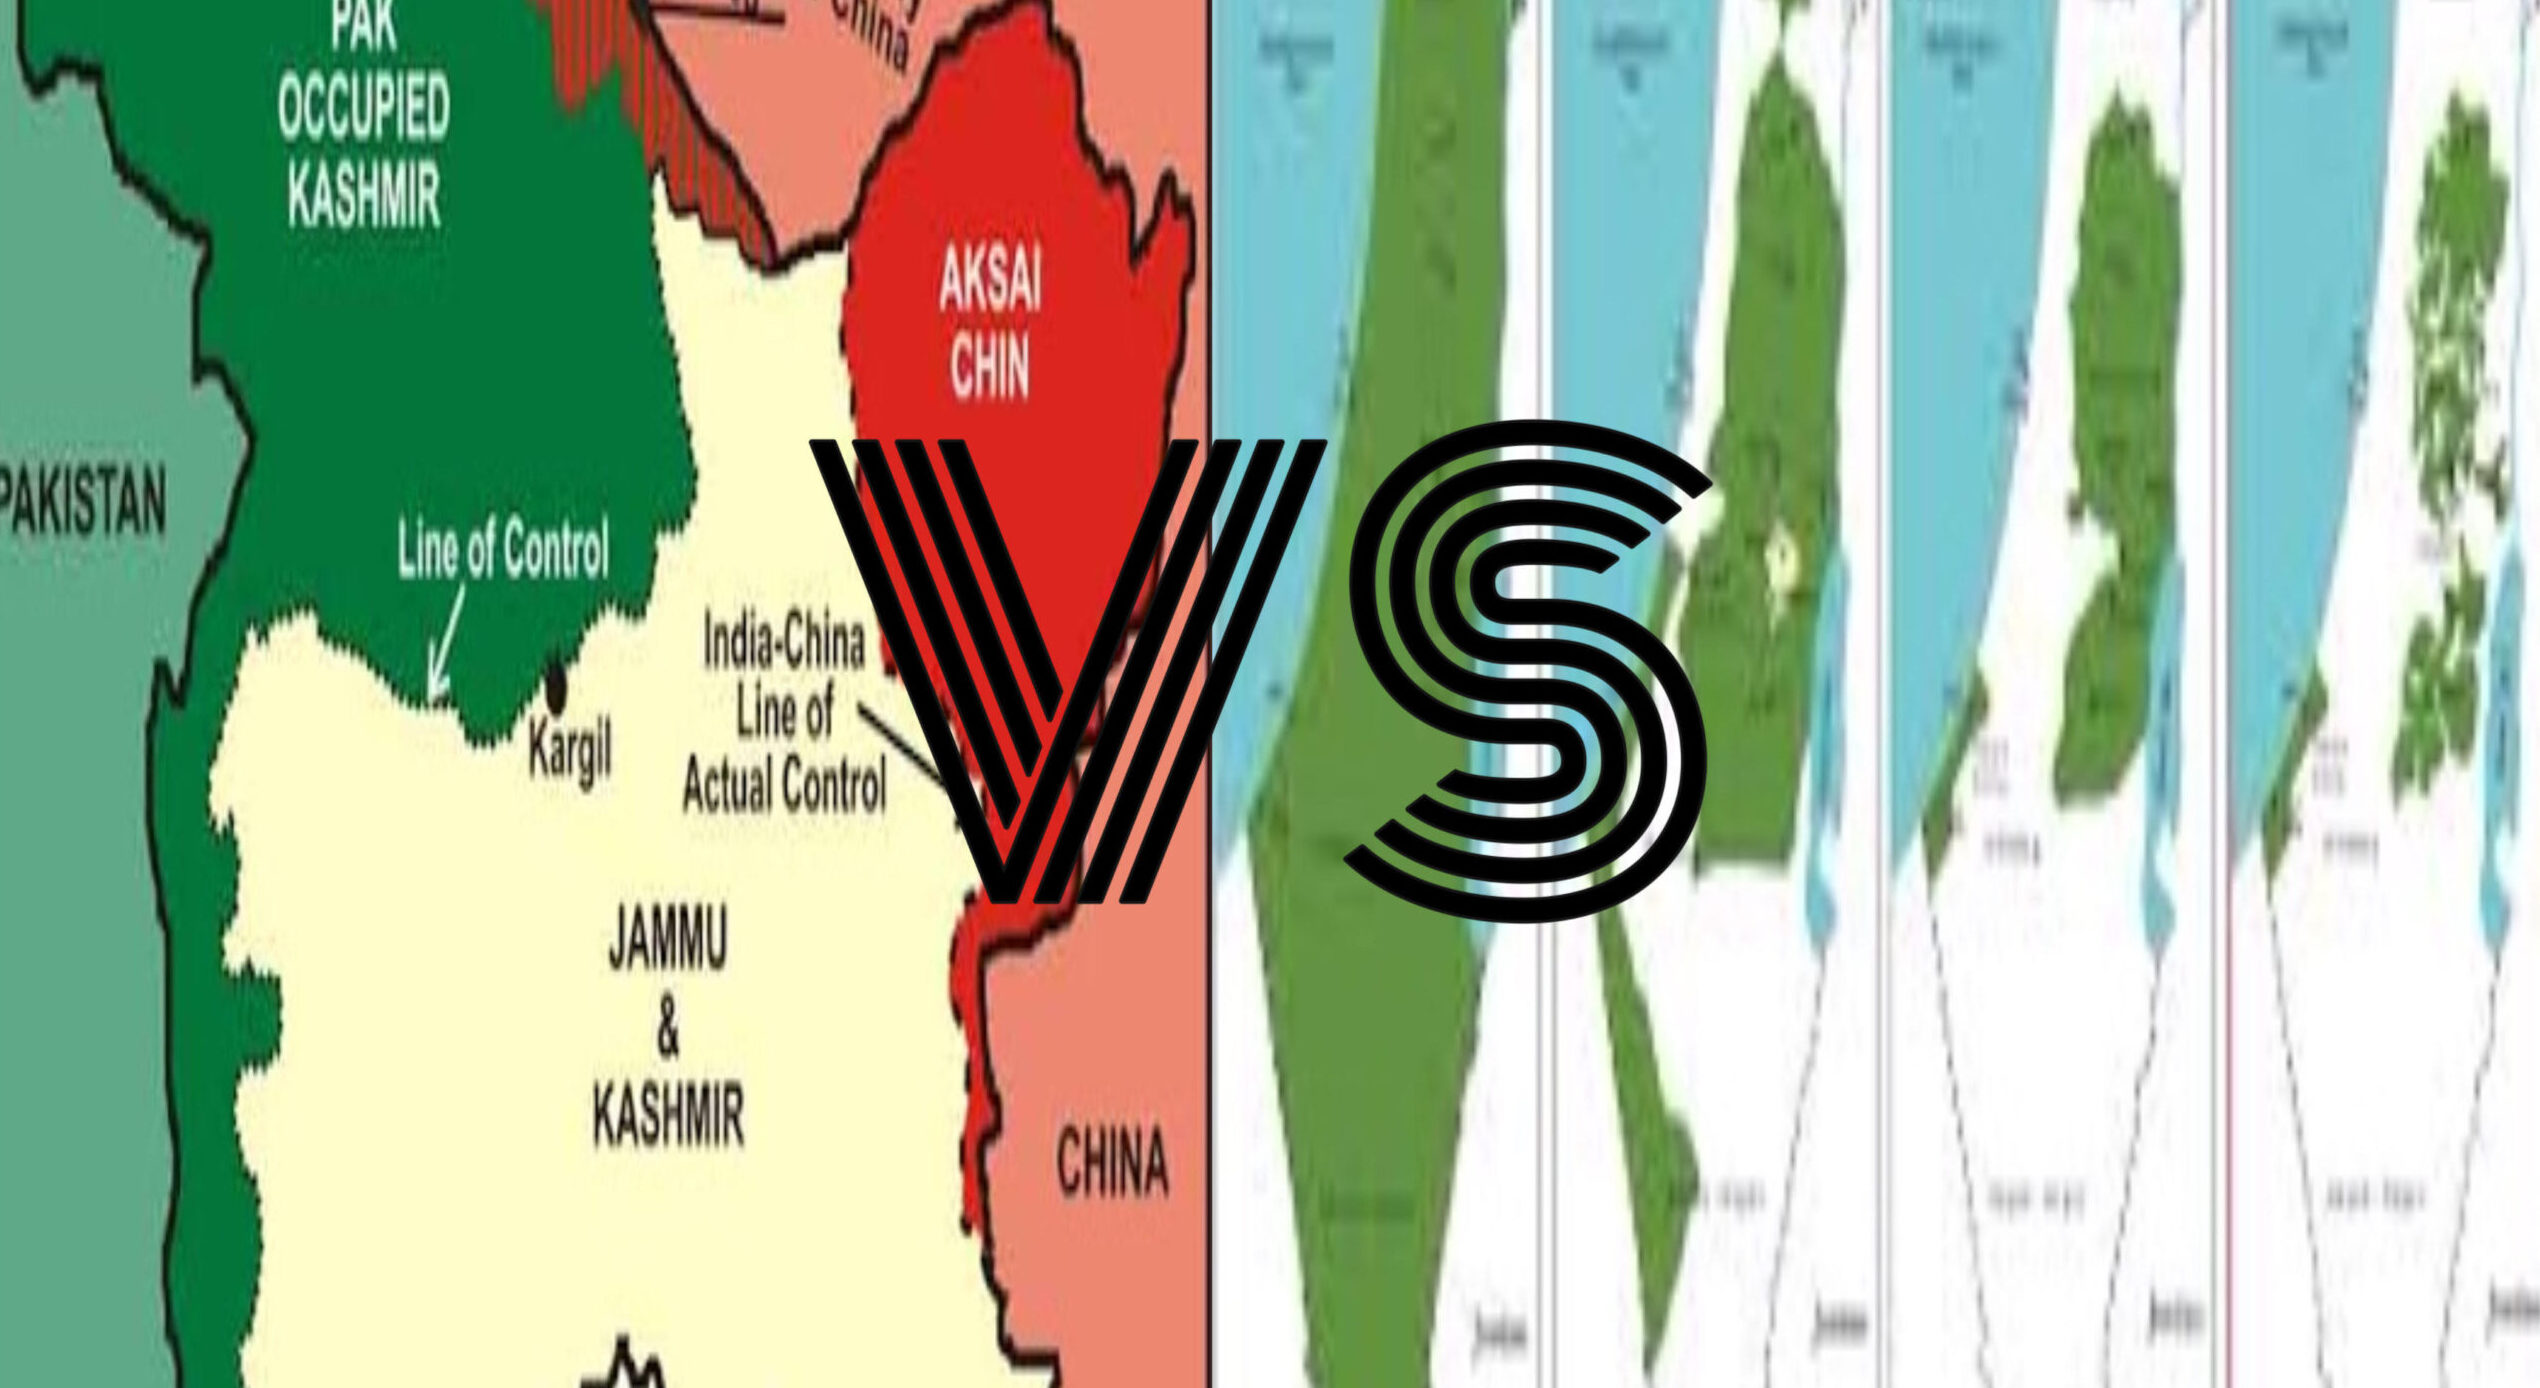 Dispute on Kashmir: Kashmir and Palestine are having similar struggles seeking Human Dignity and Self Determination Rights